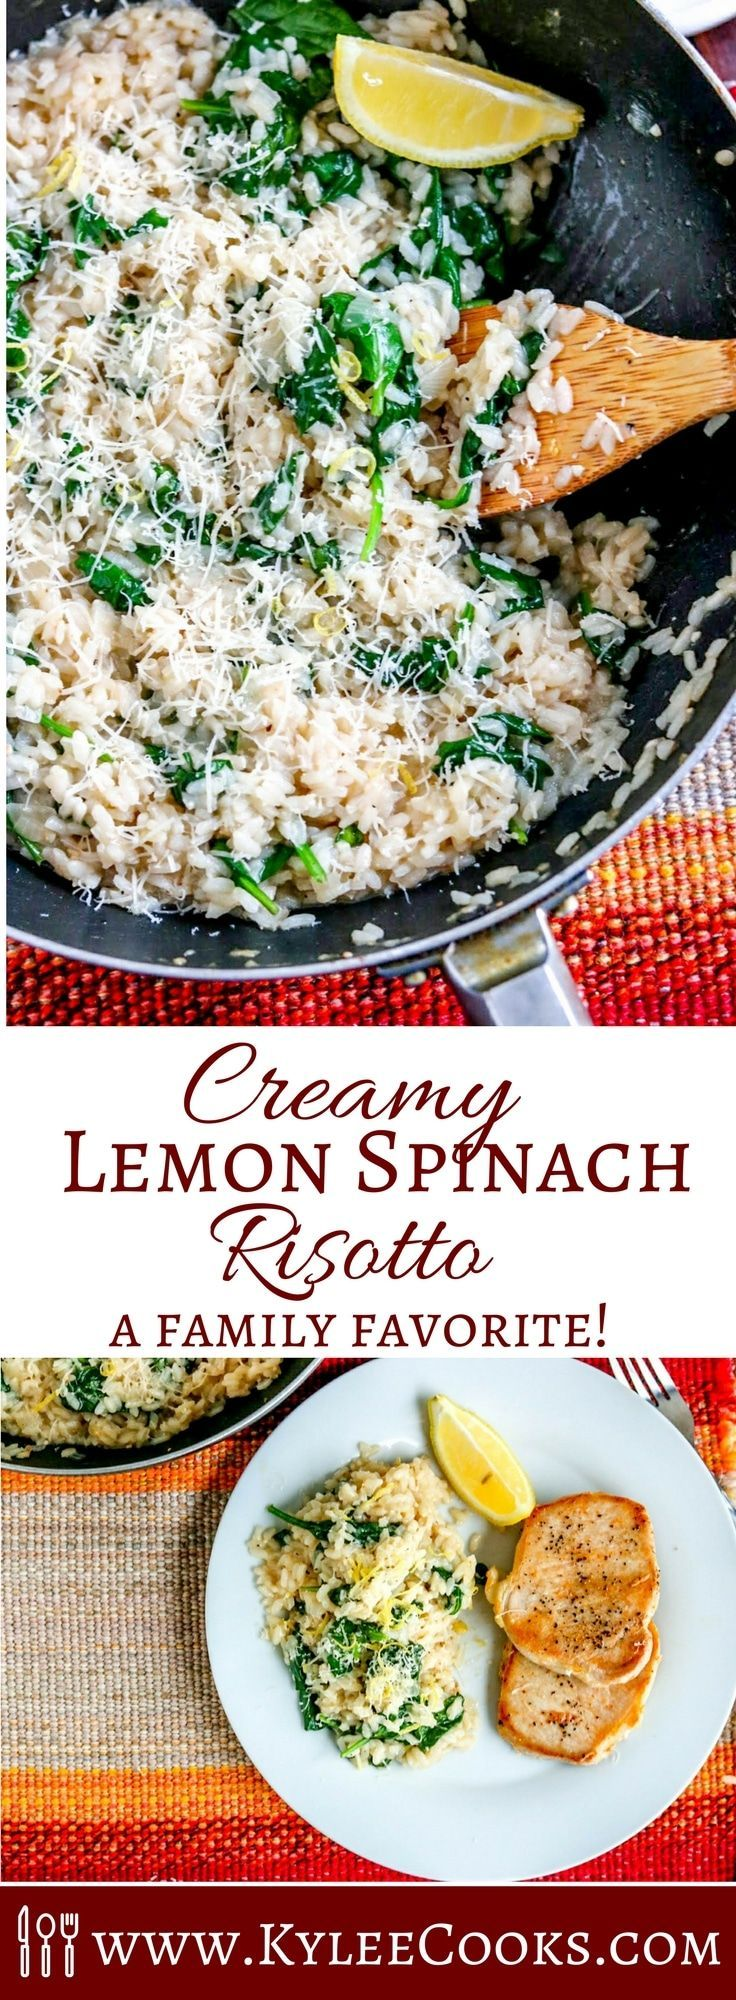 A delicious side, or a main meal – this creamy Lemon Spinach Risotto is packed with flavor and super easy to make. Adults AND kids love it! #risotto #recipe via @kyleecooks